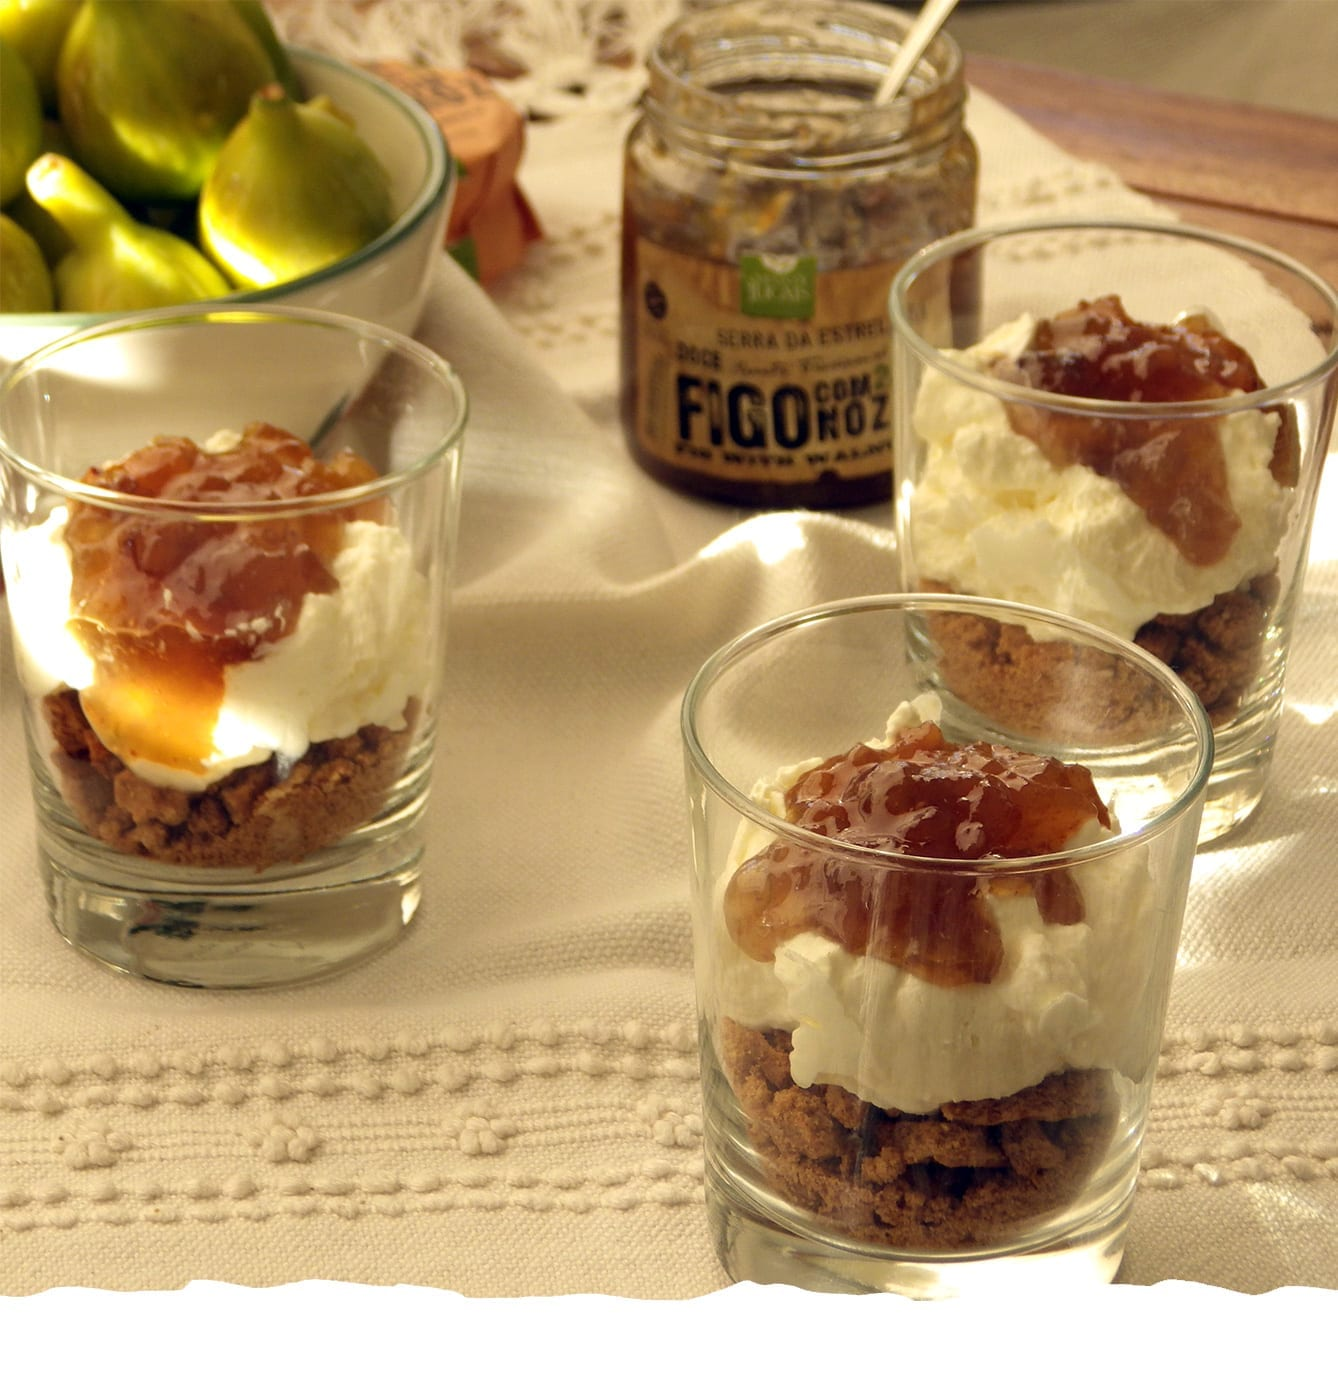 Dessert of Mascarpone and Fig with Walnuts Jam Mobile